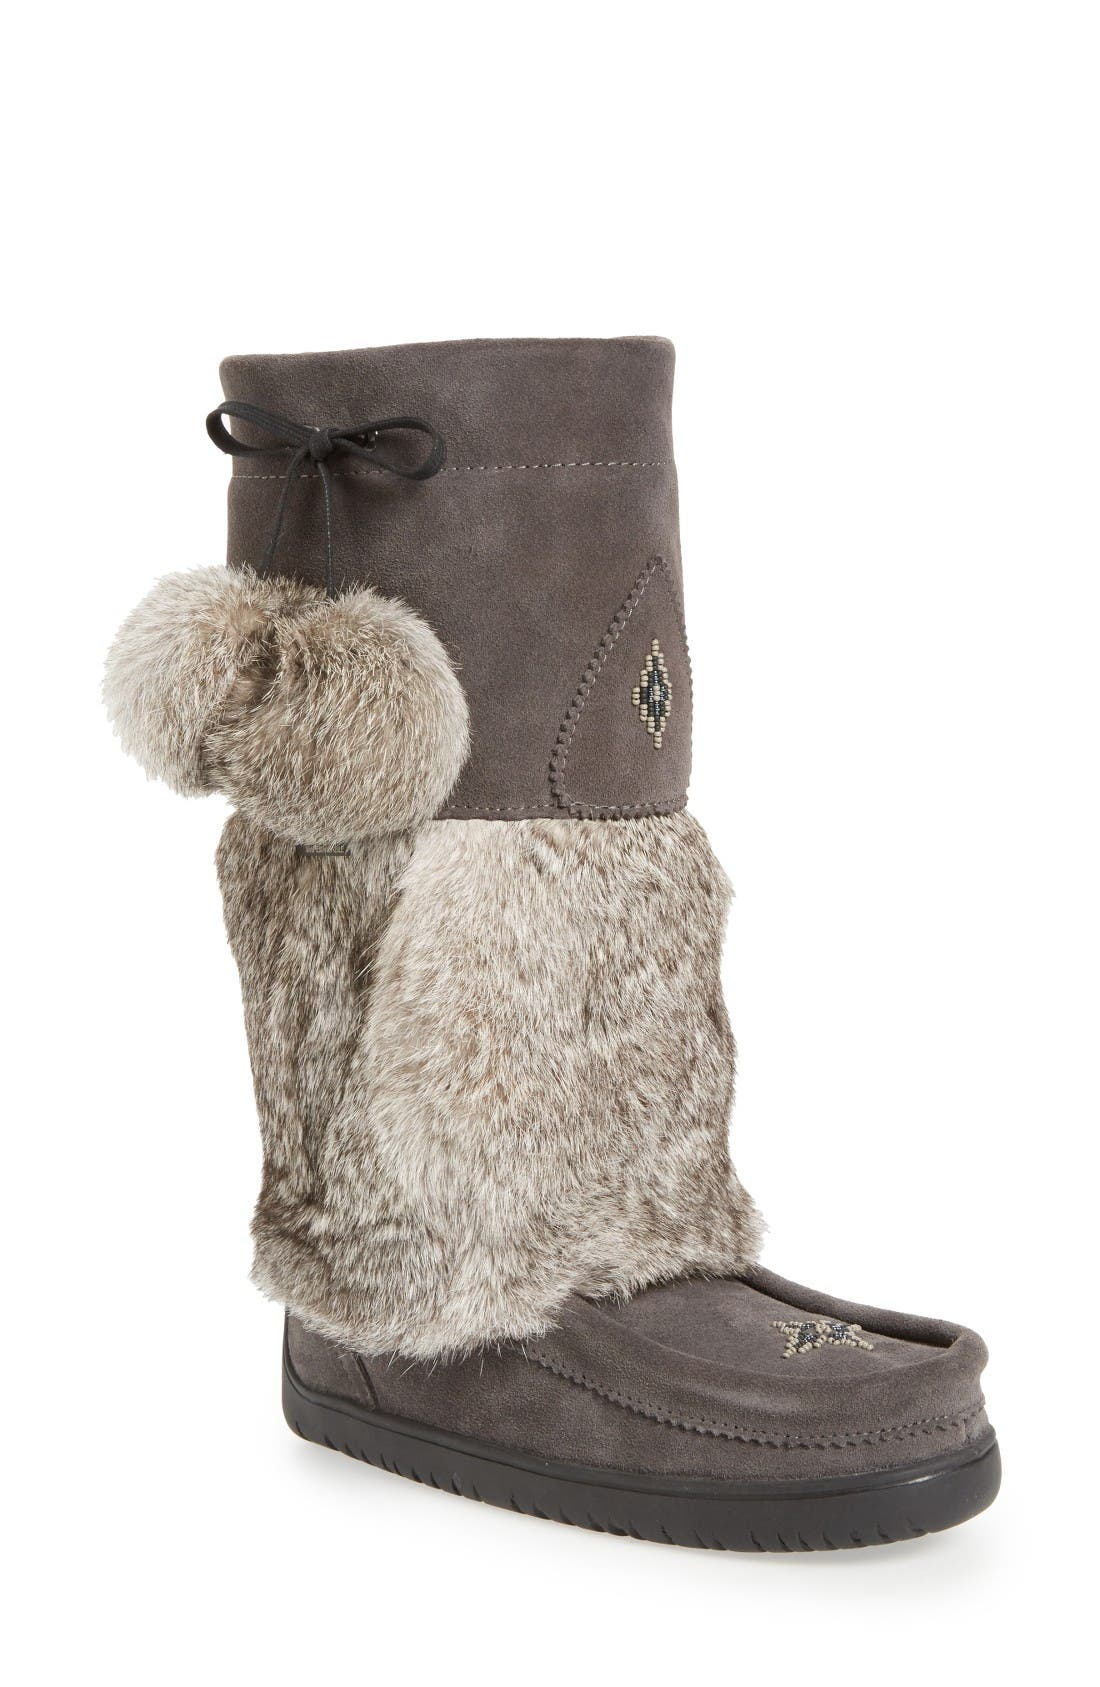 SNOWY OWL WATERPROOF GENUINE FUR BOOT